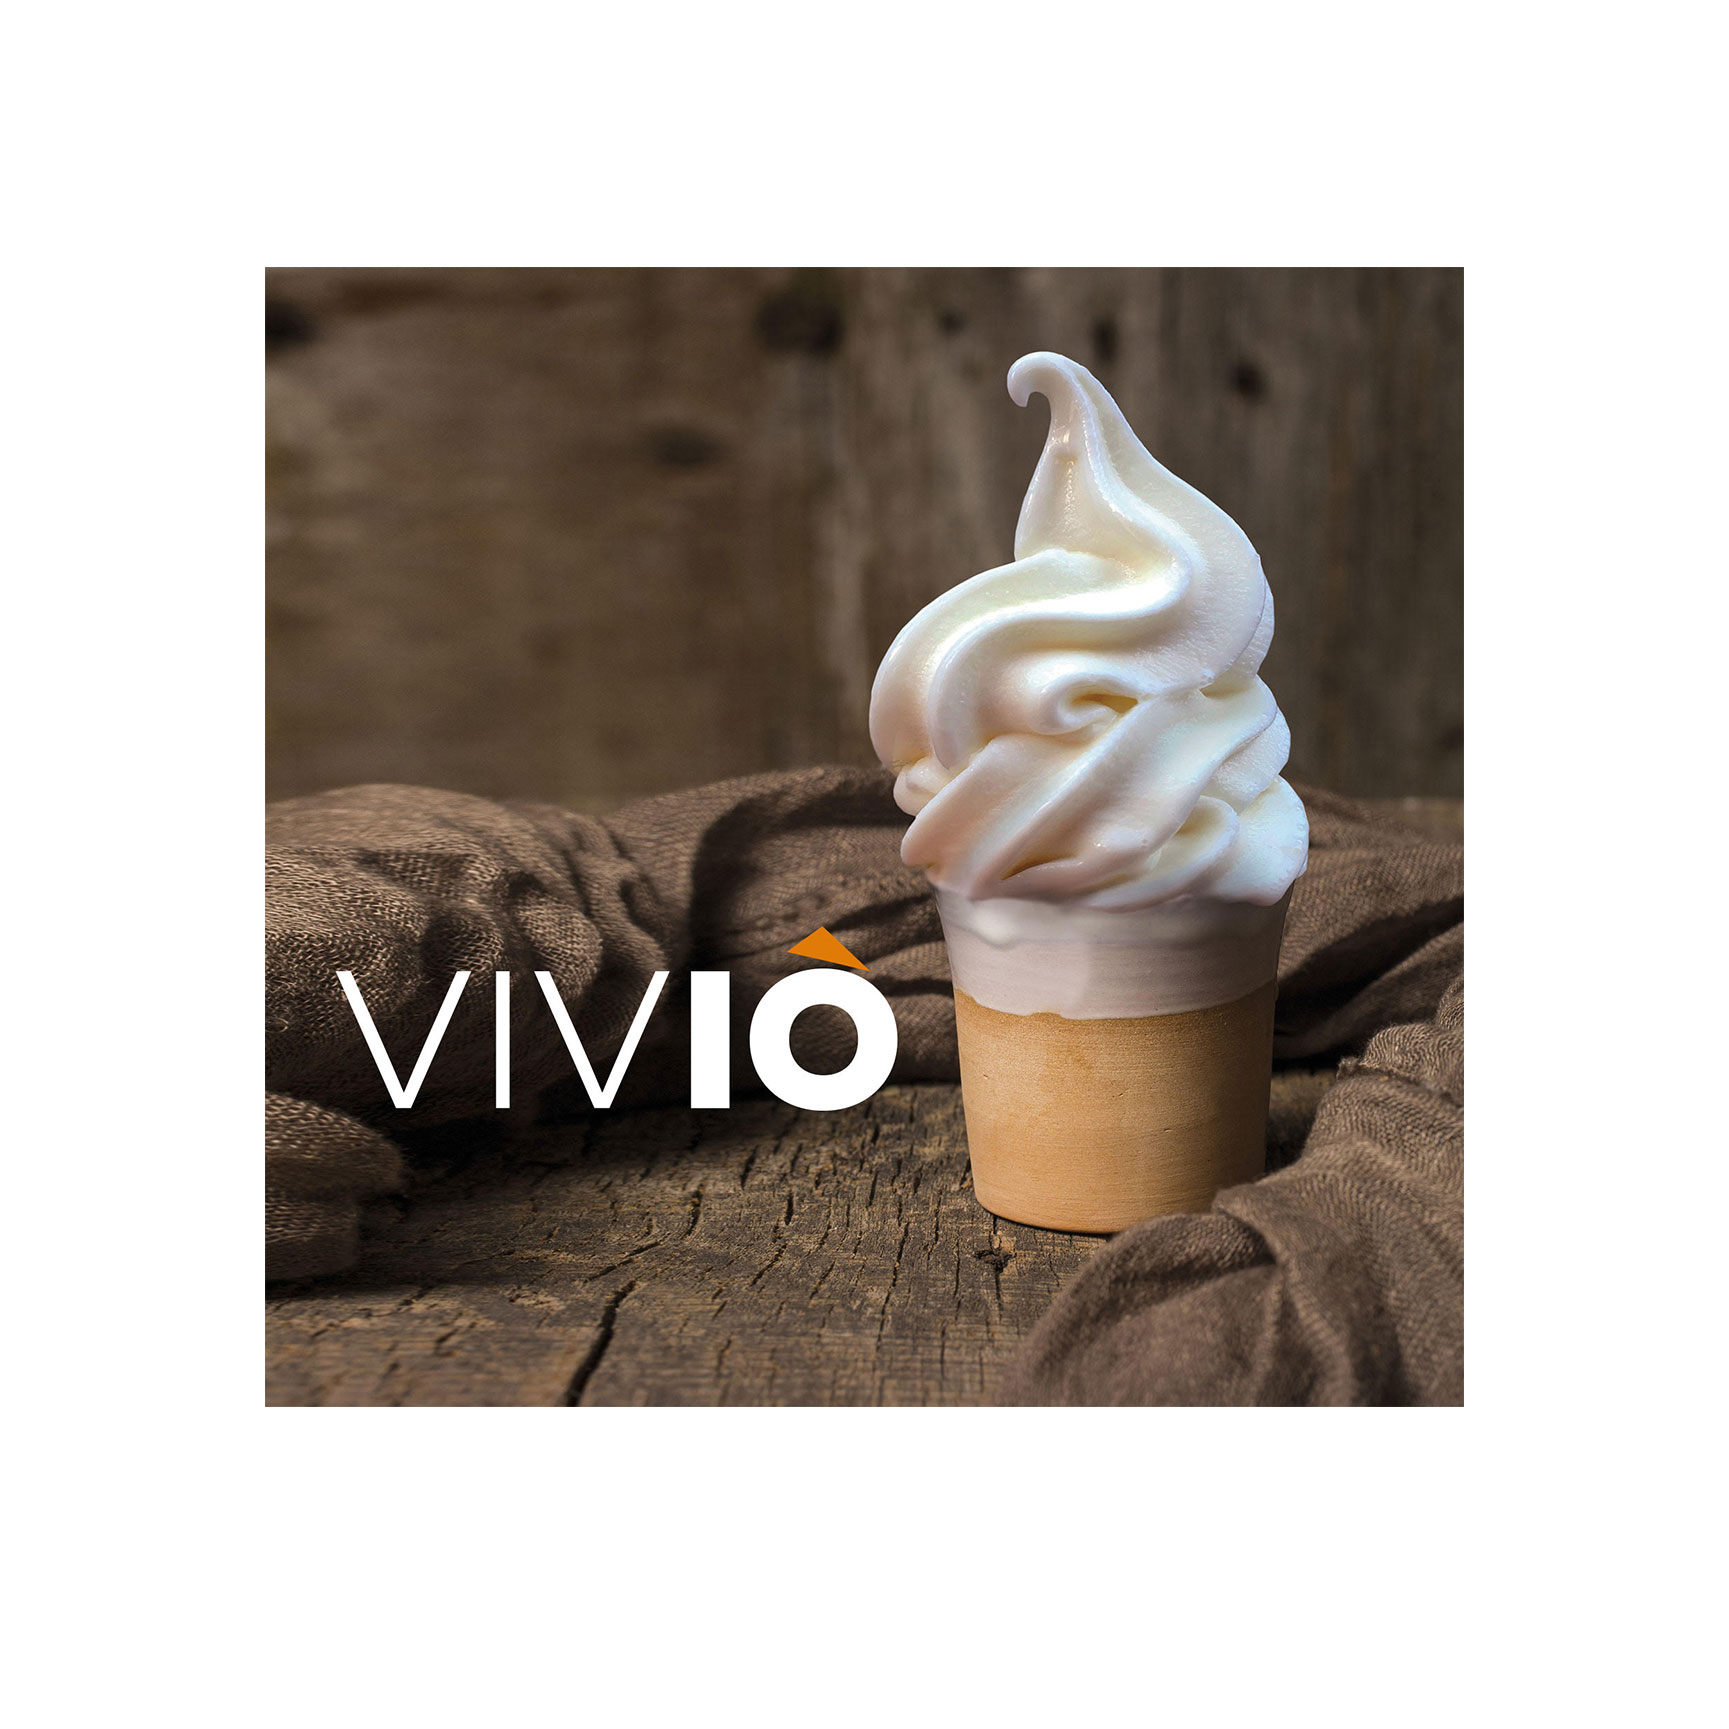 ViViÒ, goodness and wellness in a spoon!